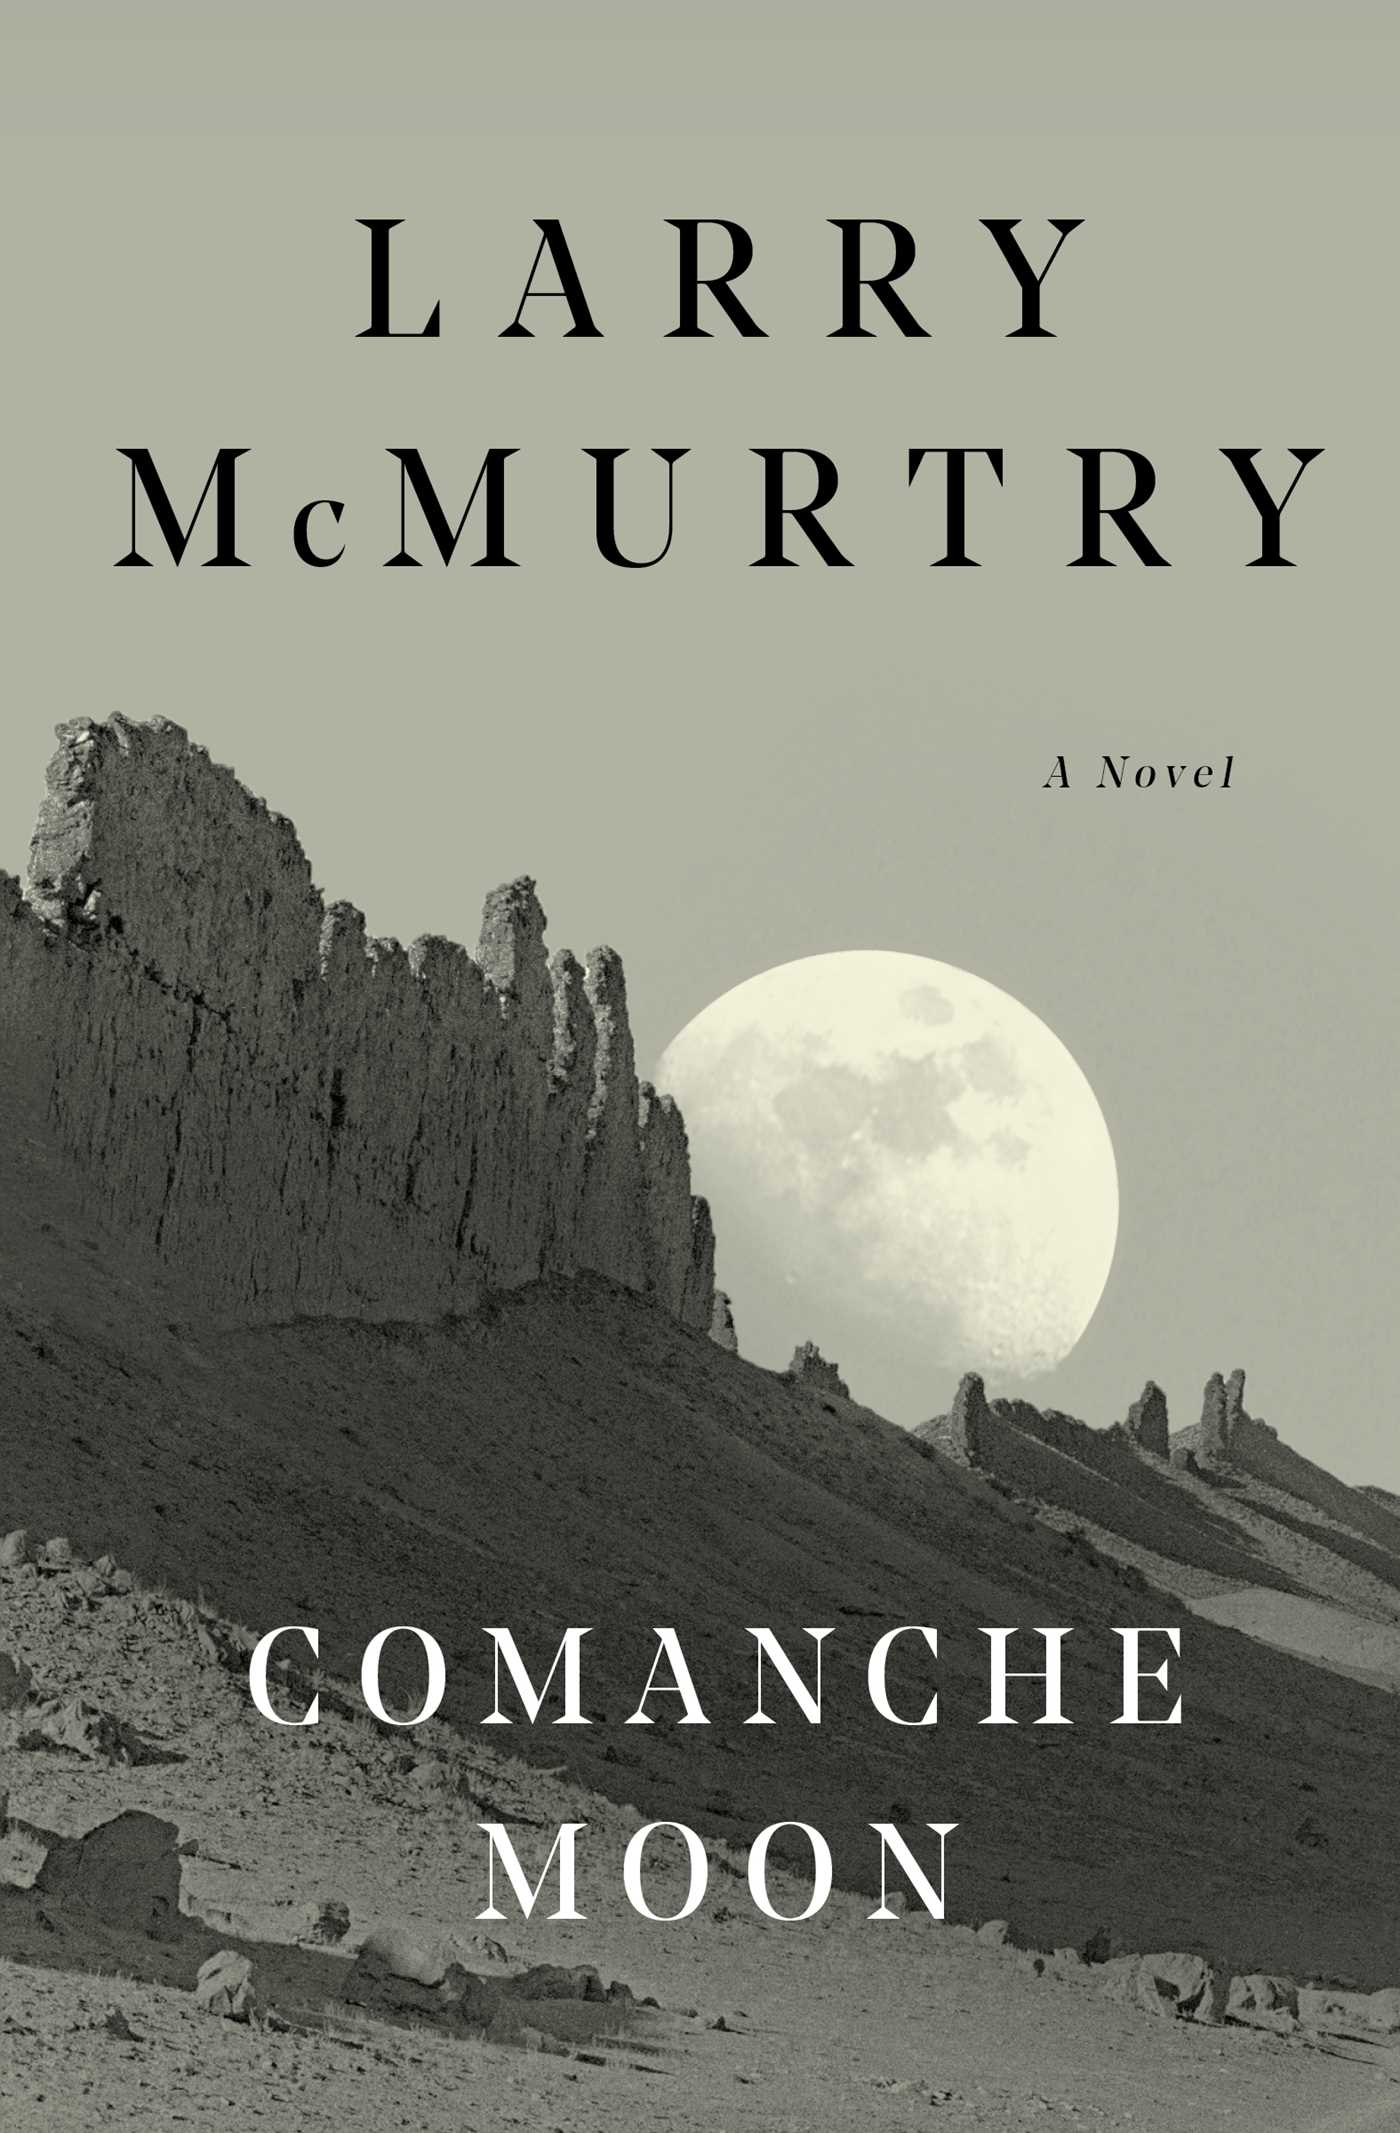 Comanche-moon-9781451606546_hr